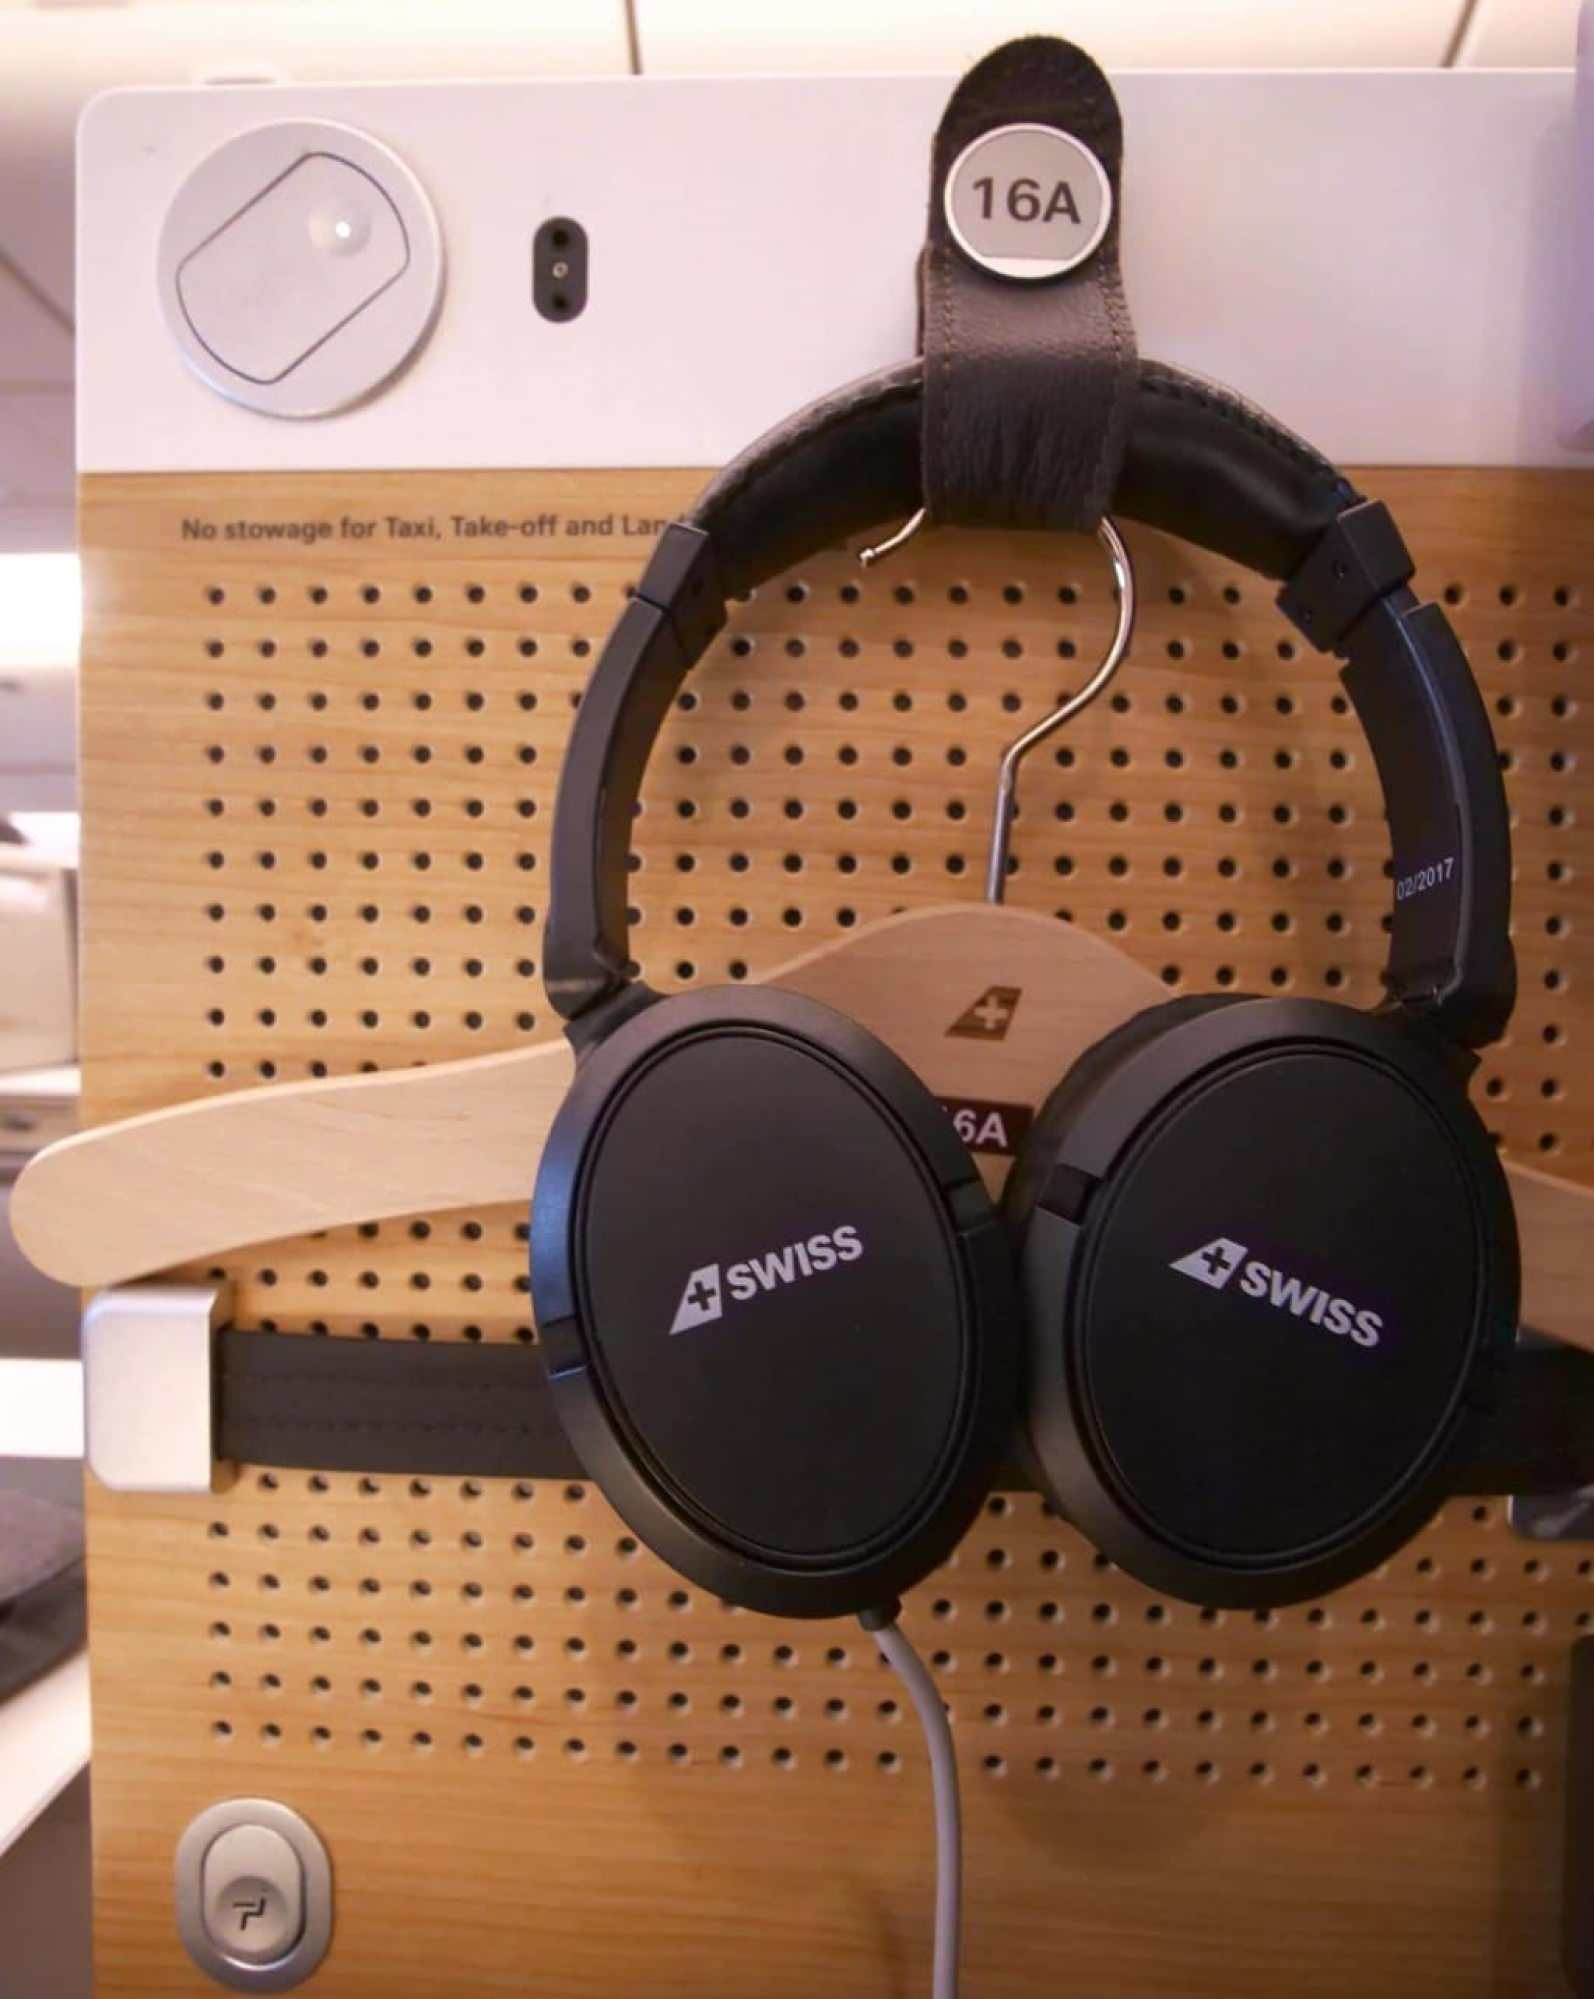 Noise cancelling headsets on Swiss Business Class